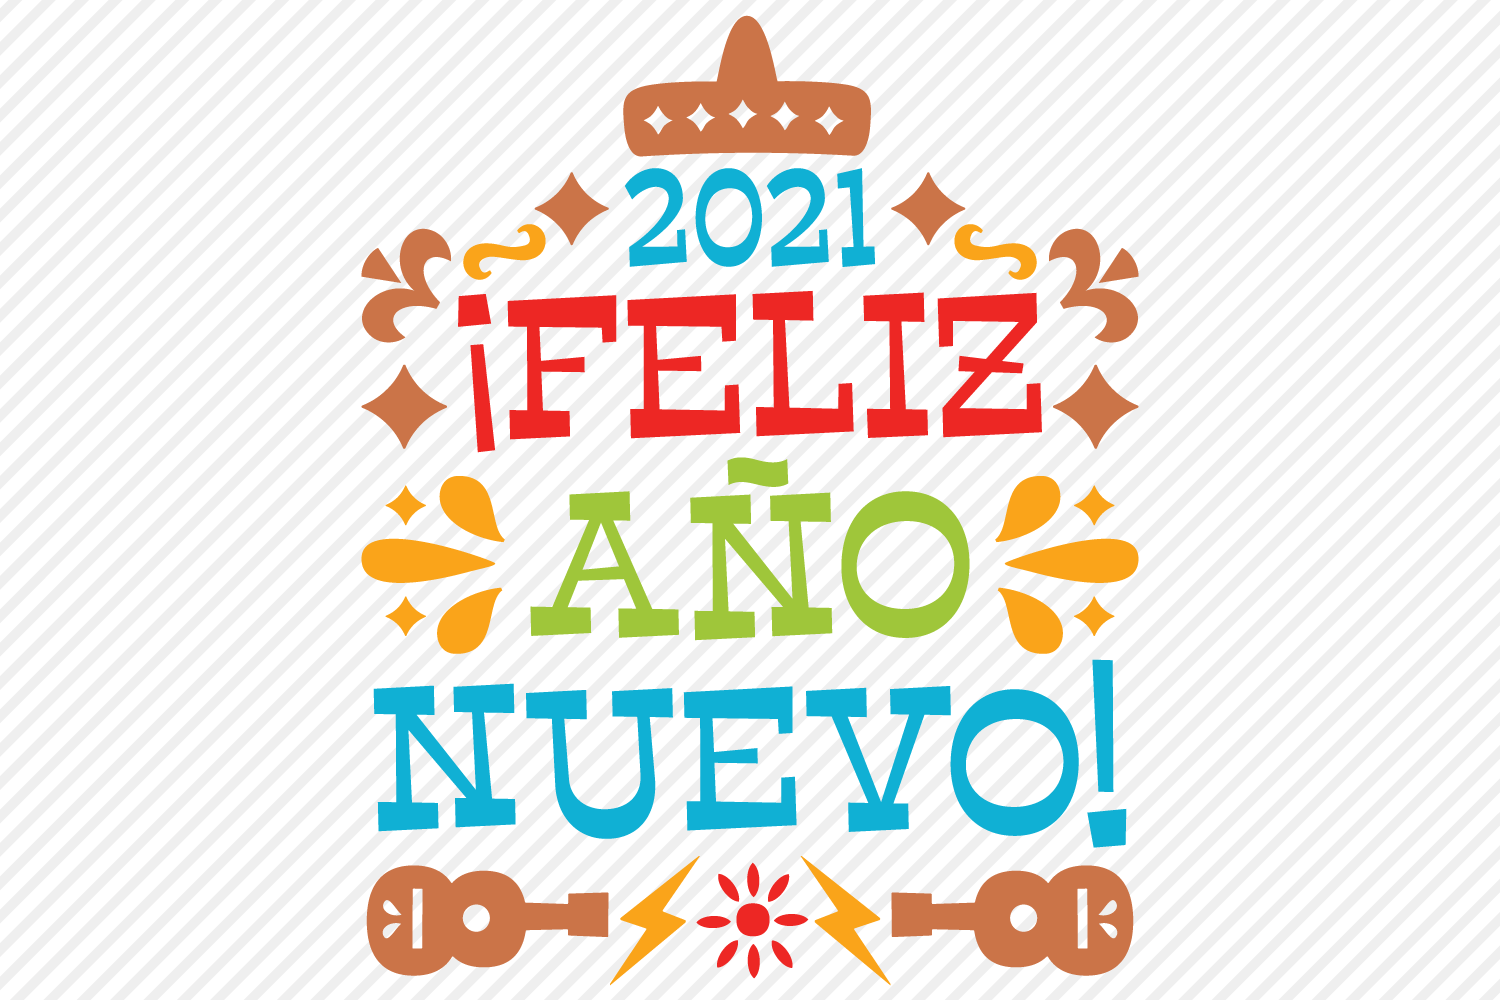 2021 Feliz Ano Nuevo SVG, Cut File, Happy New Year Design example image 2